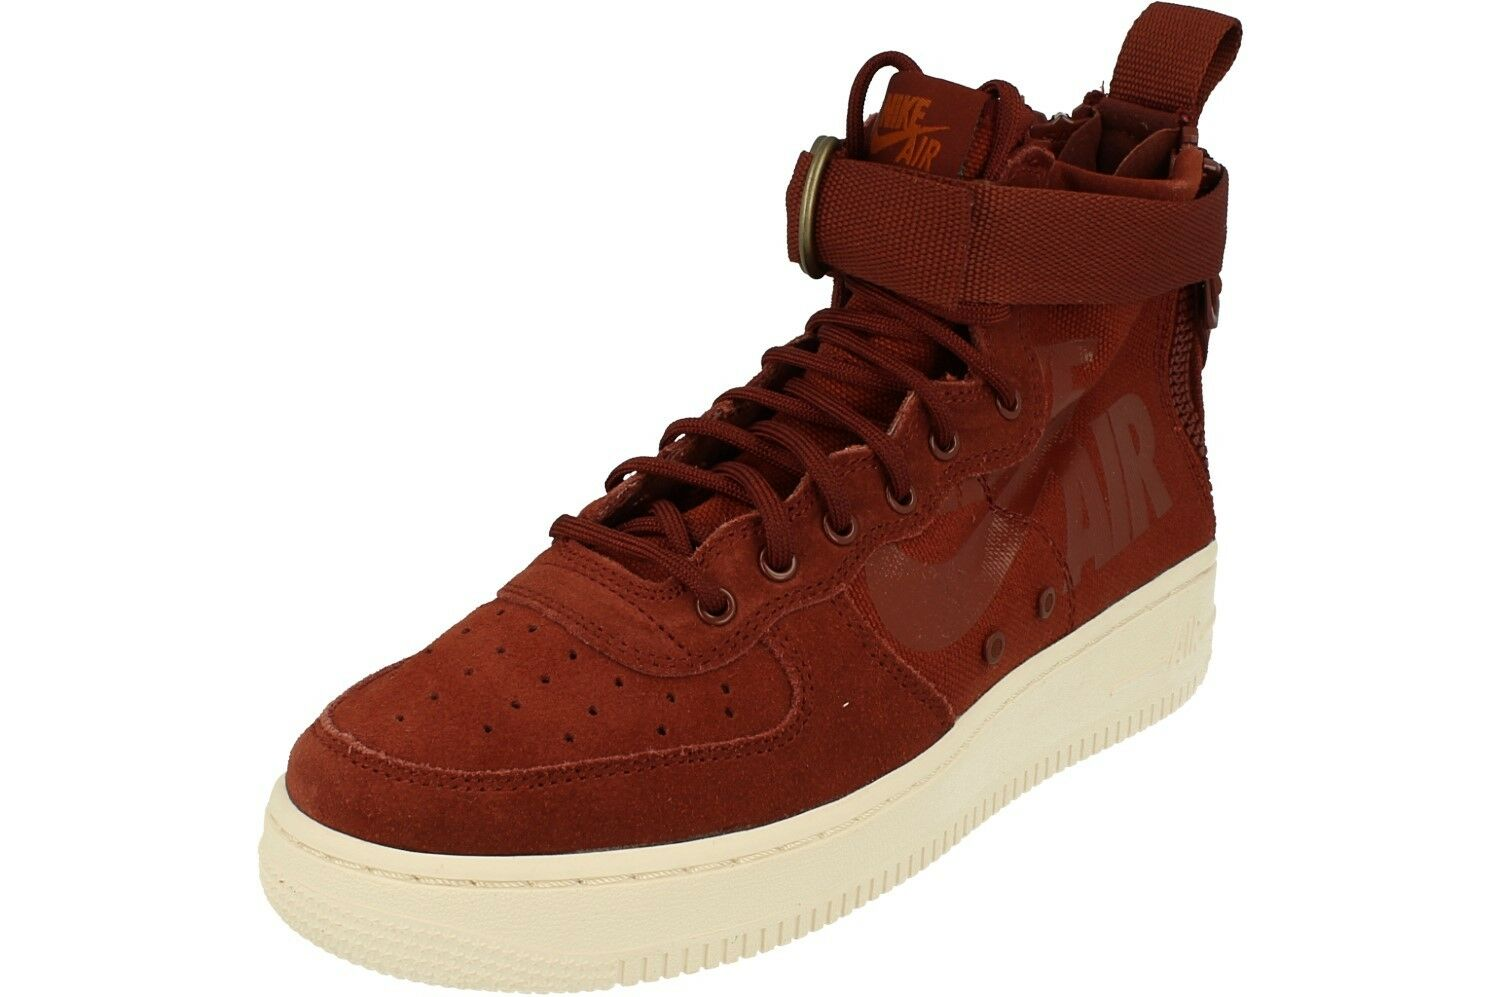 Nike Sf Af1 Air Force Mid GS Hi Top Trainers Aj0424 Sneakers shoes 201